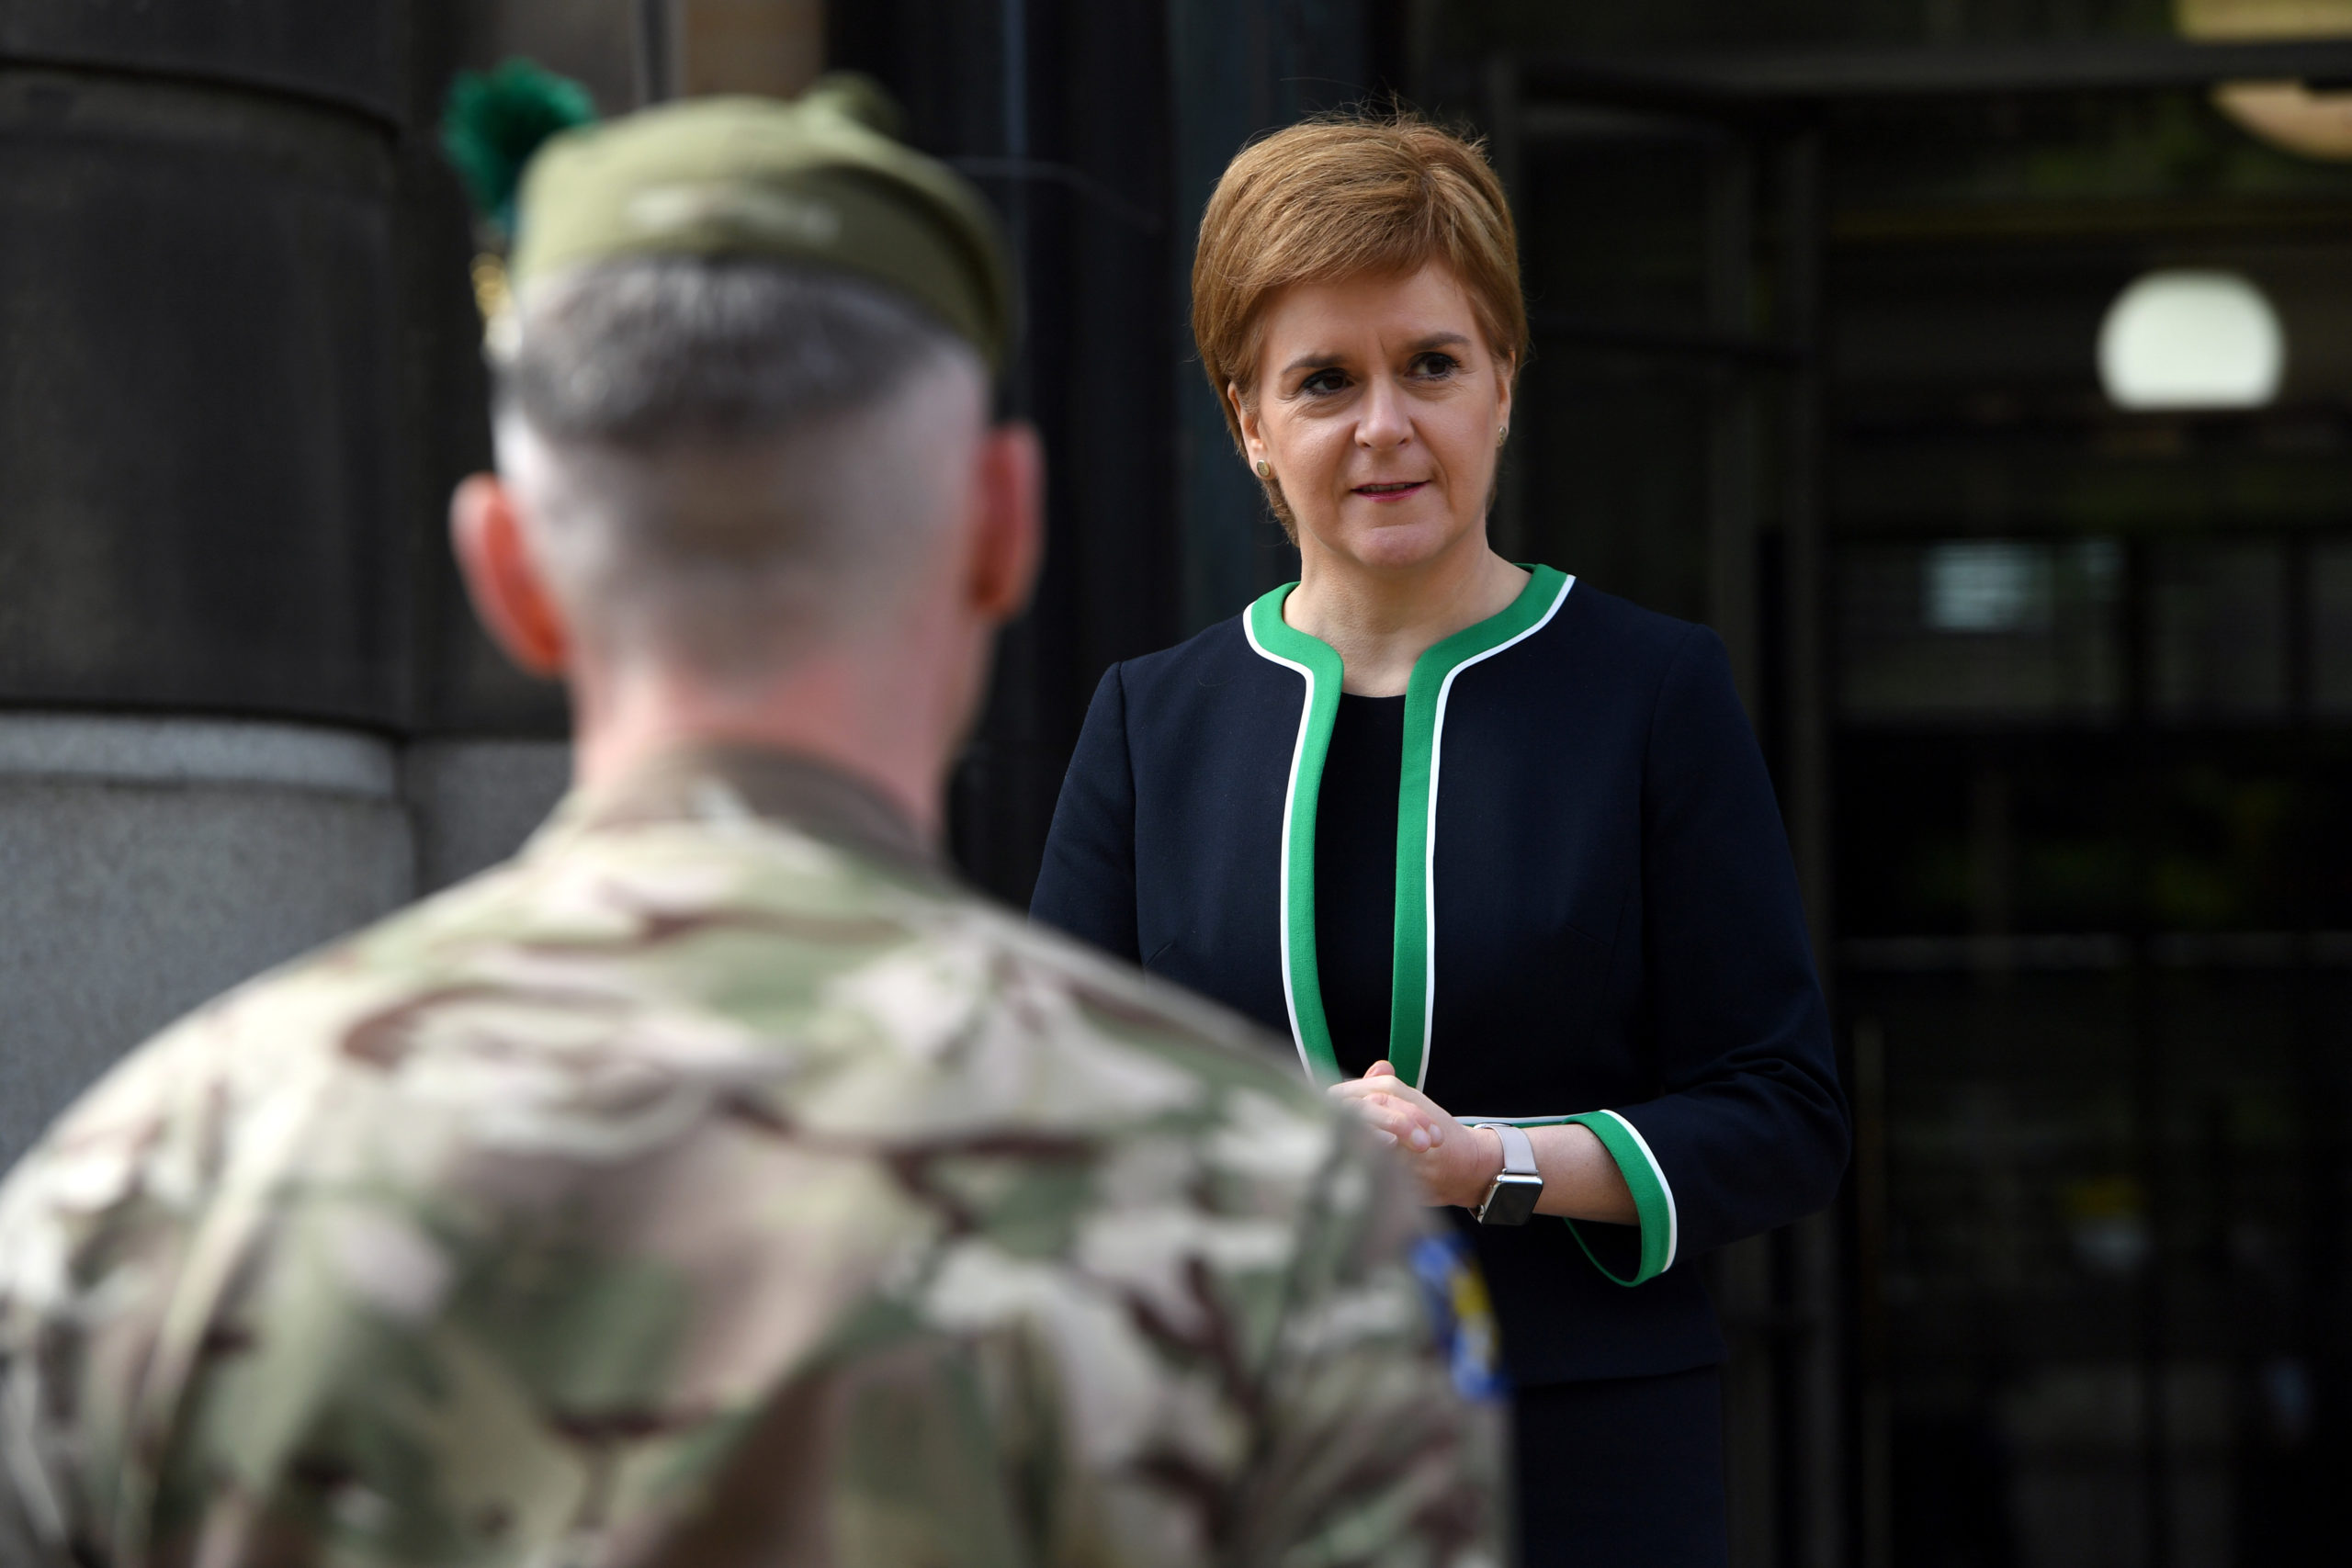 Scotland's First Minister Nicola Sturgeon speaks to members of the armed forces